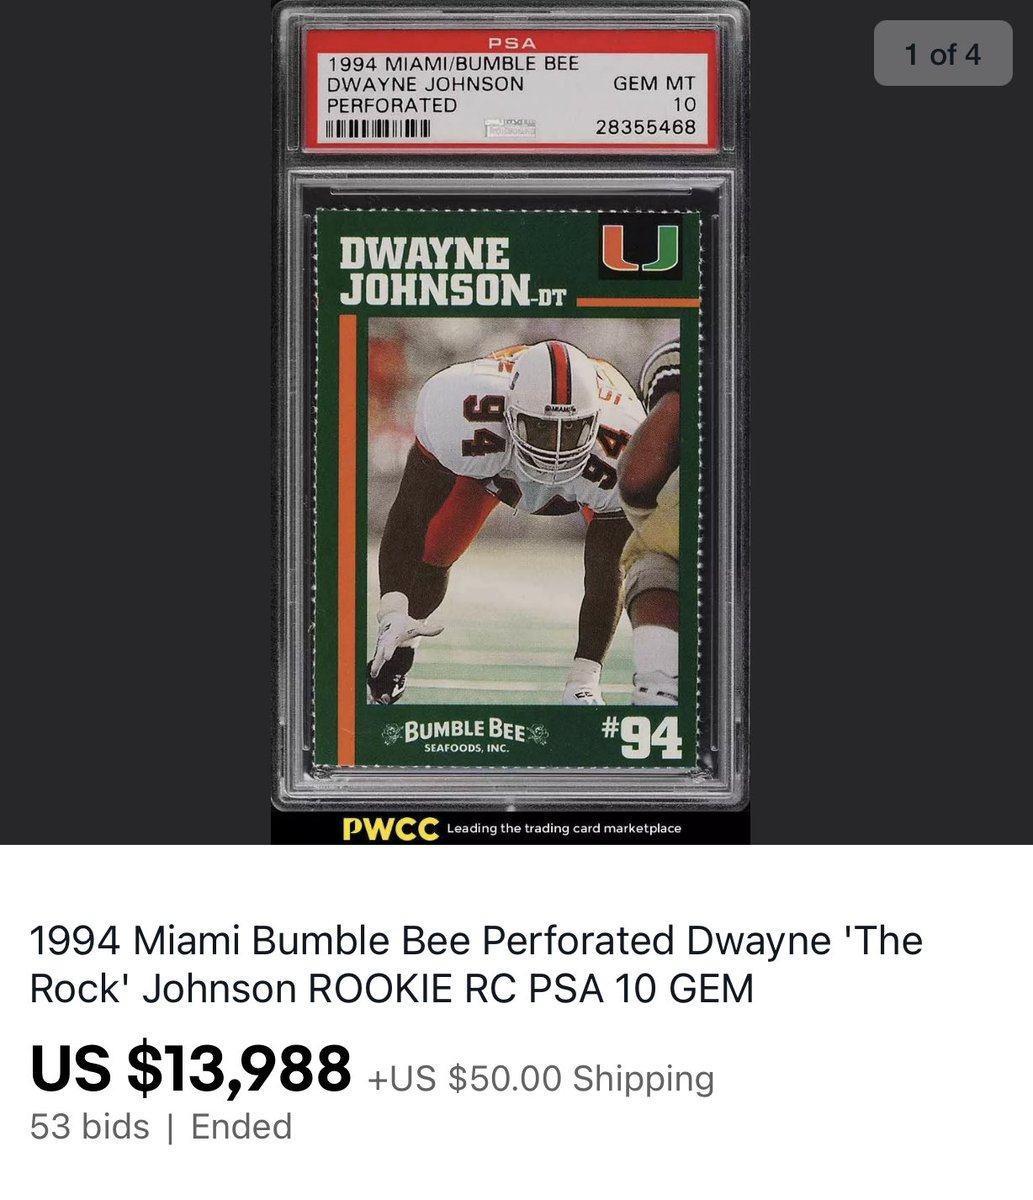 Gem Mint 10 card of @TheRock from the 1994 Bumblebee Tuna University of Miami sheet sold tonight on @eBay for nearly $14,000.  This was a $1,500 card in July. https://t.co/Nbc3q0NvBe